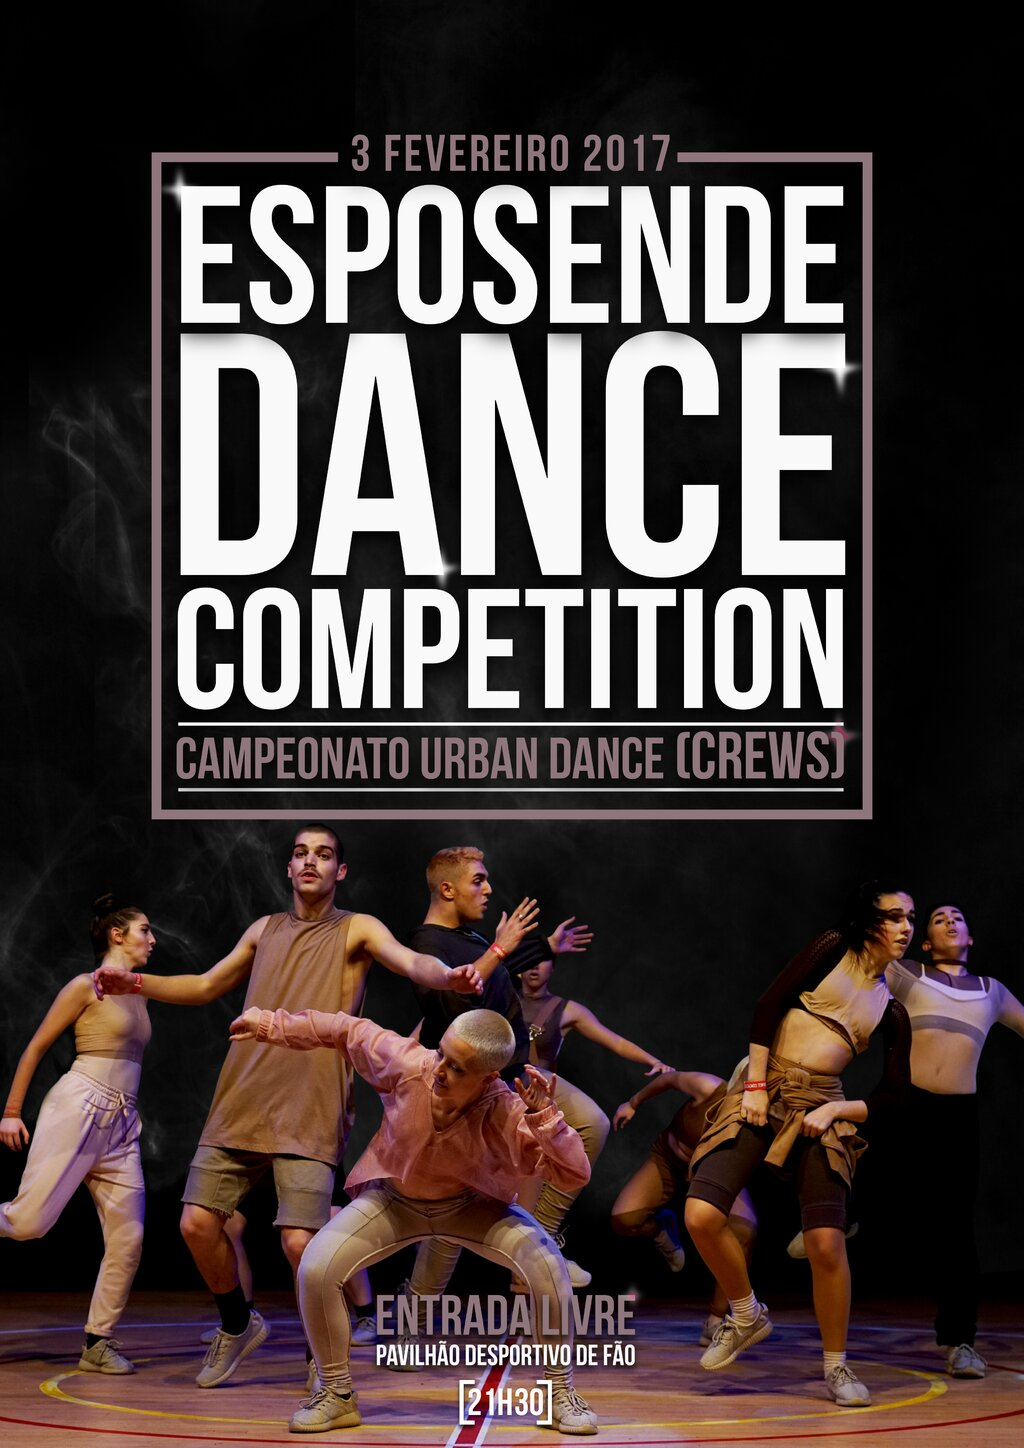 Esposendedancecompetition 2018 1 1024 2500